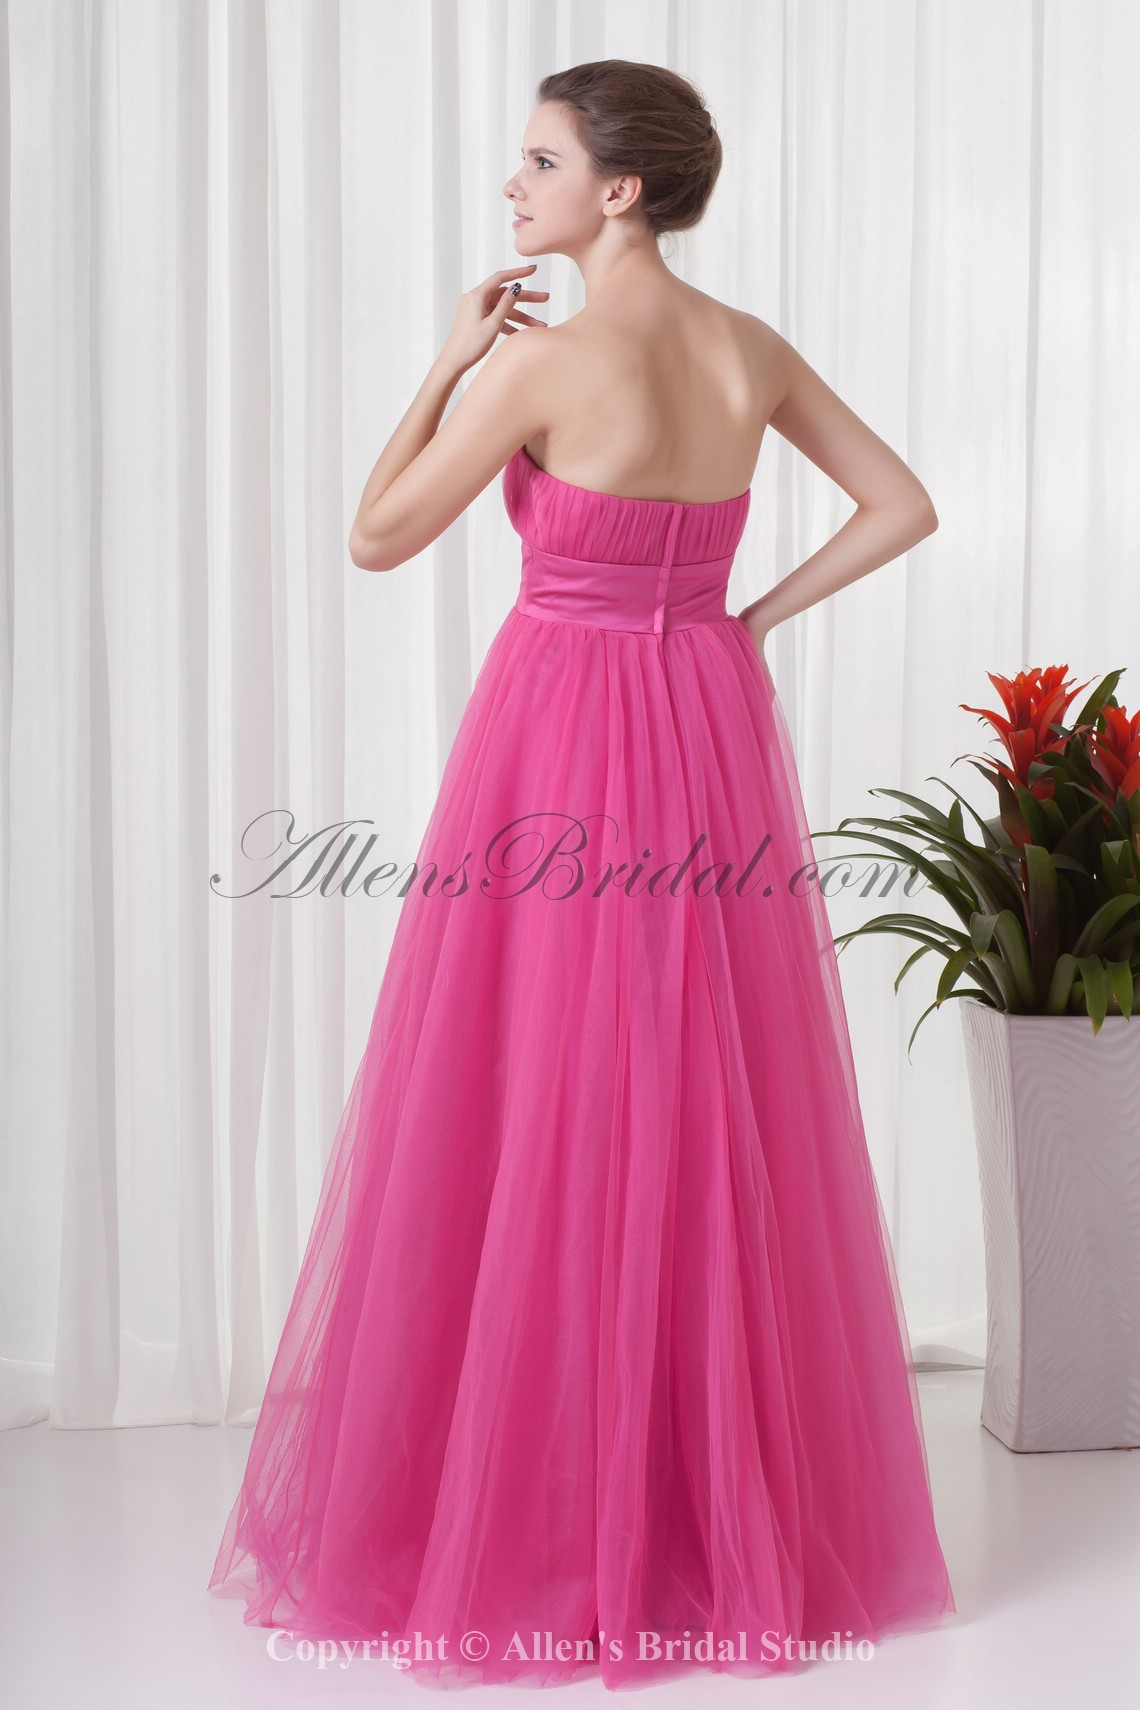 /305-2442/net-sweetheart-neckline-a-line-floor-length-sash-prom-dress.jpg